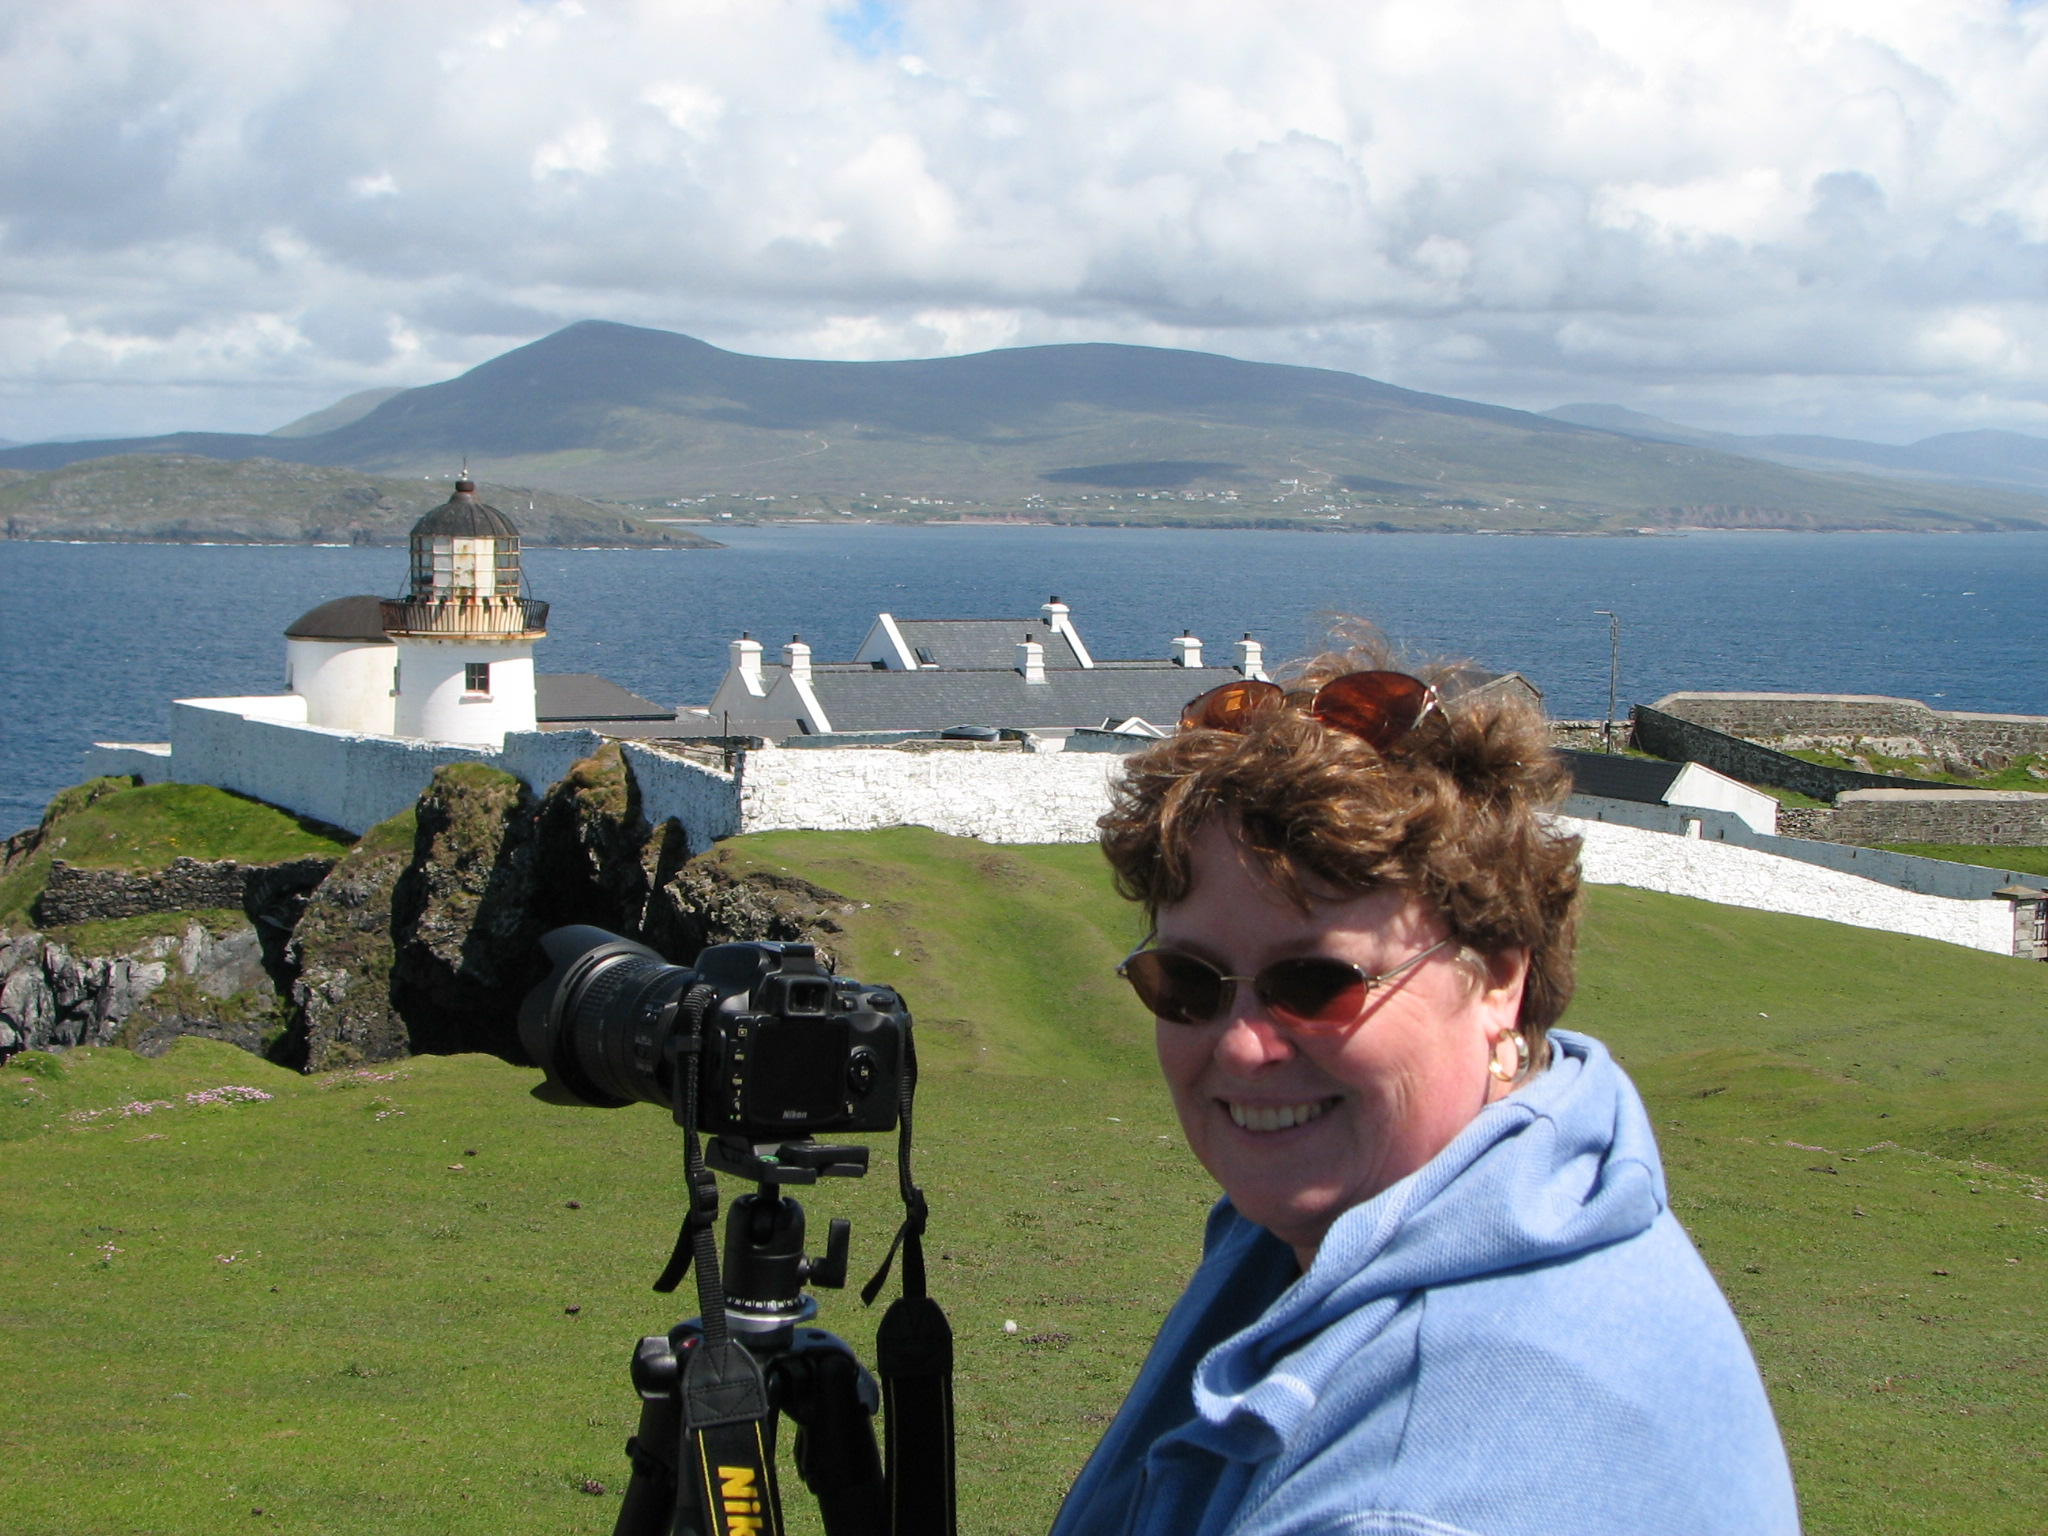 Ireland: Nancy Ori Photography Workshops